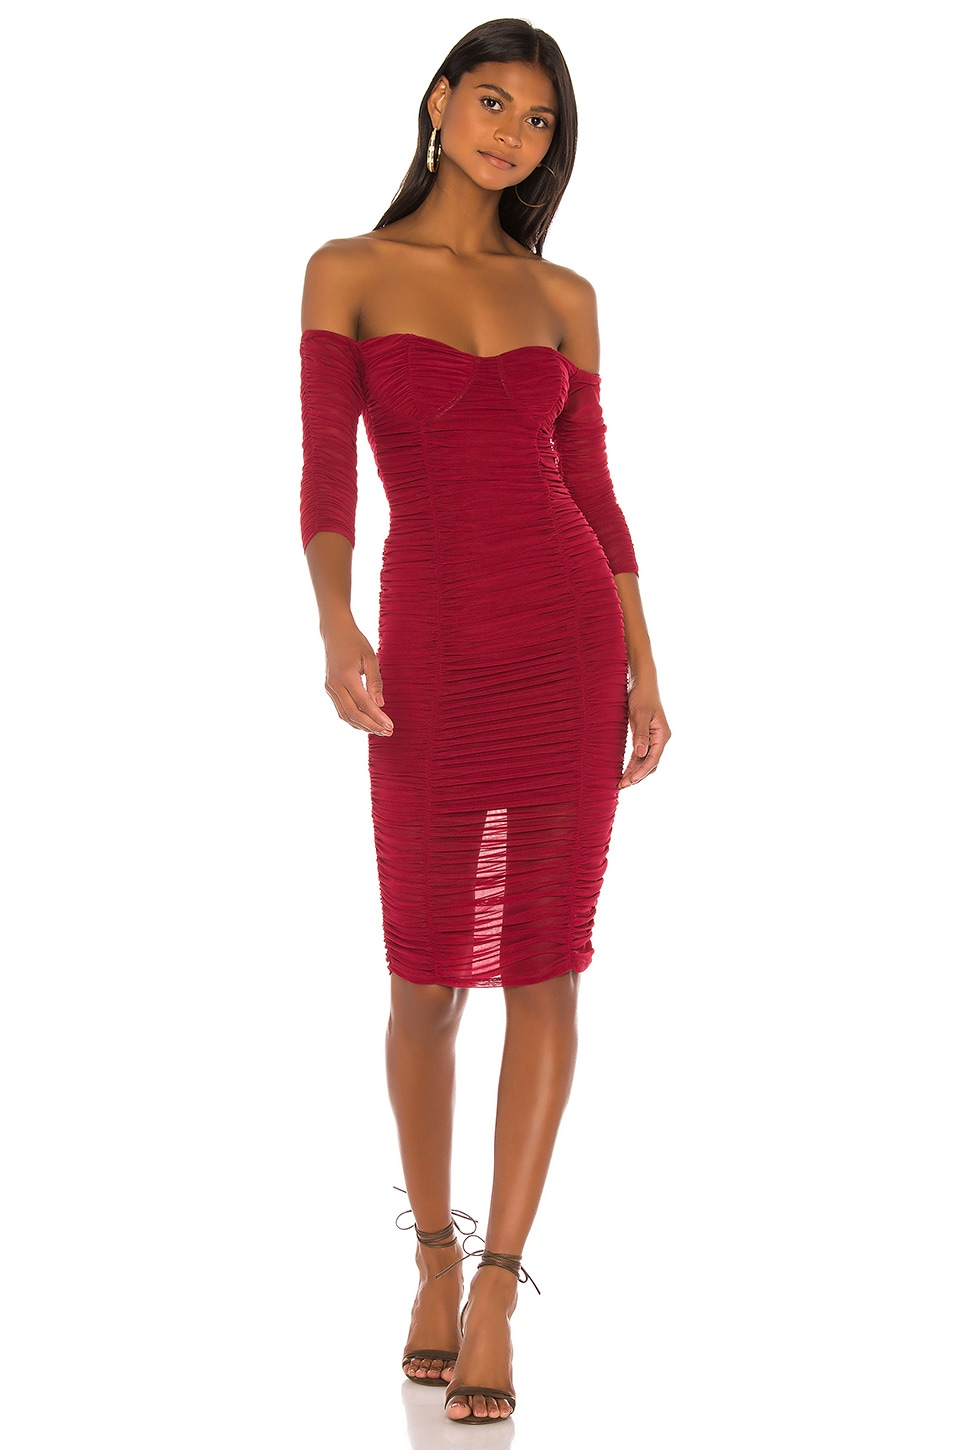 MAJORELLE Jared Midi Dress in Cranberry Red